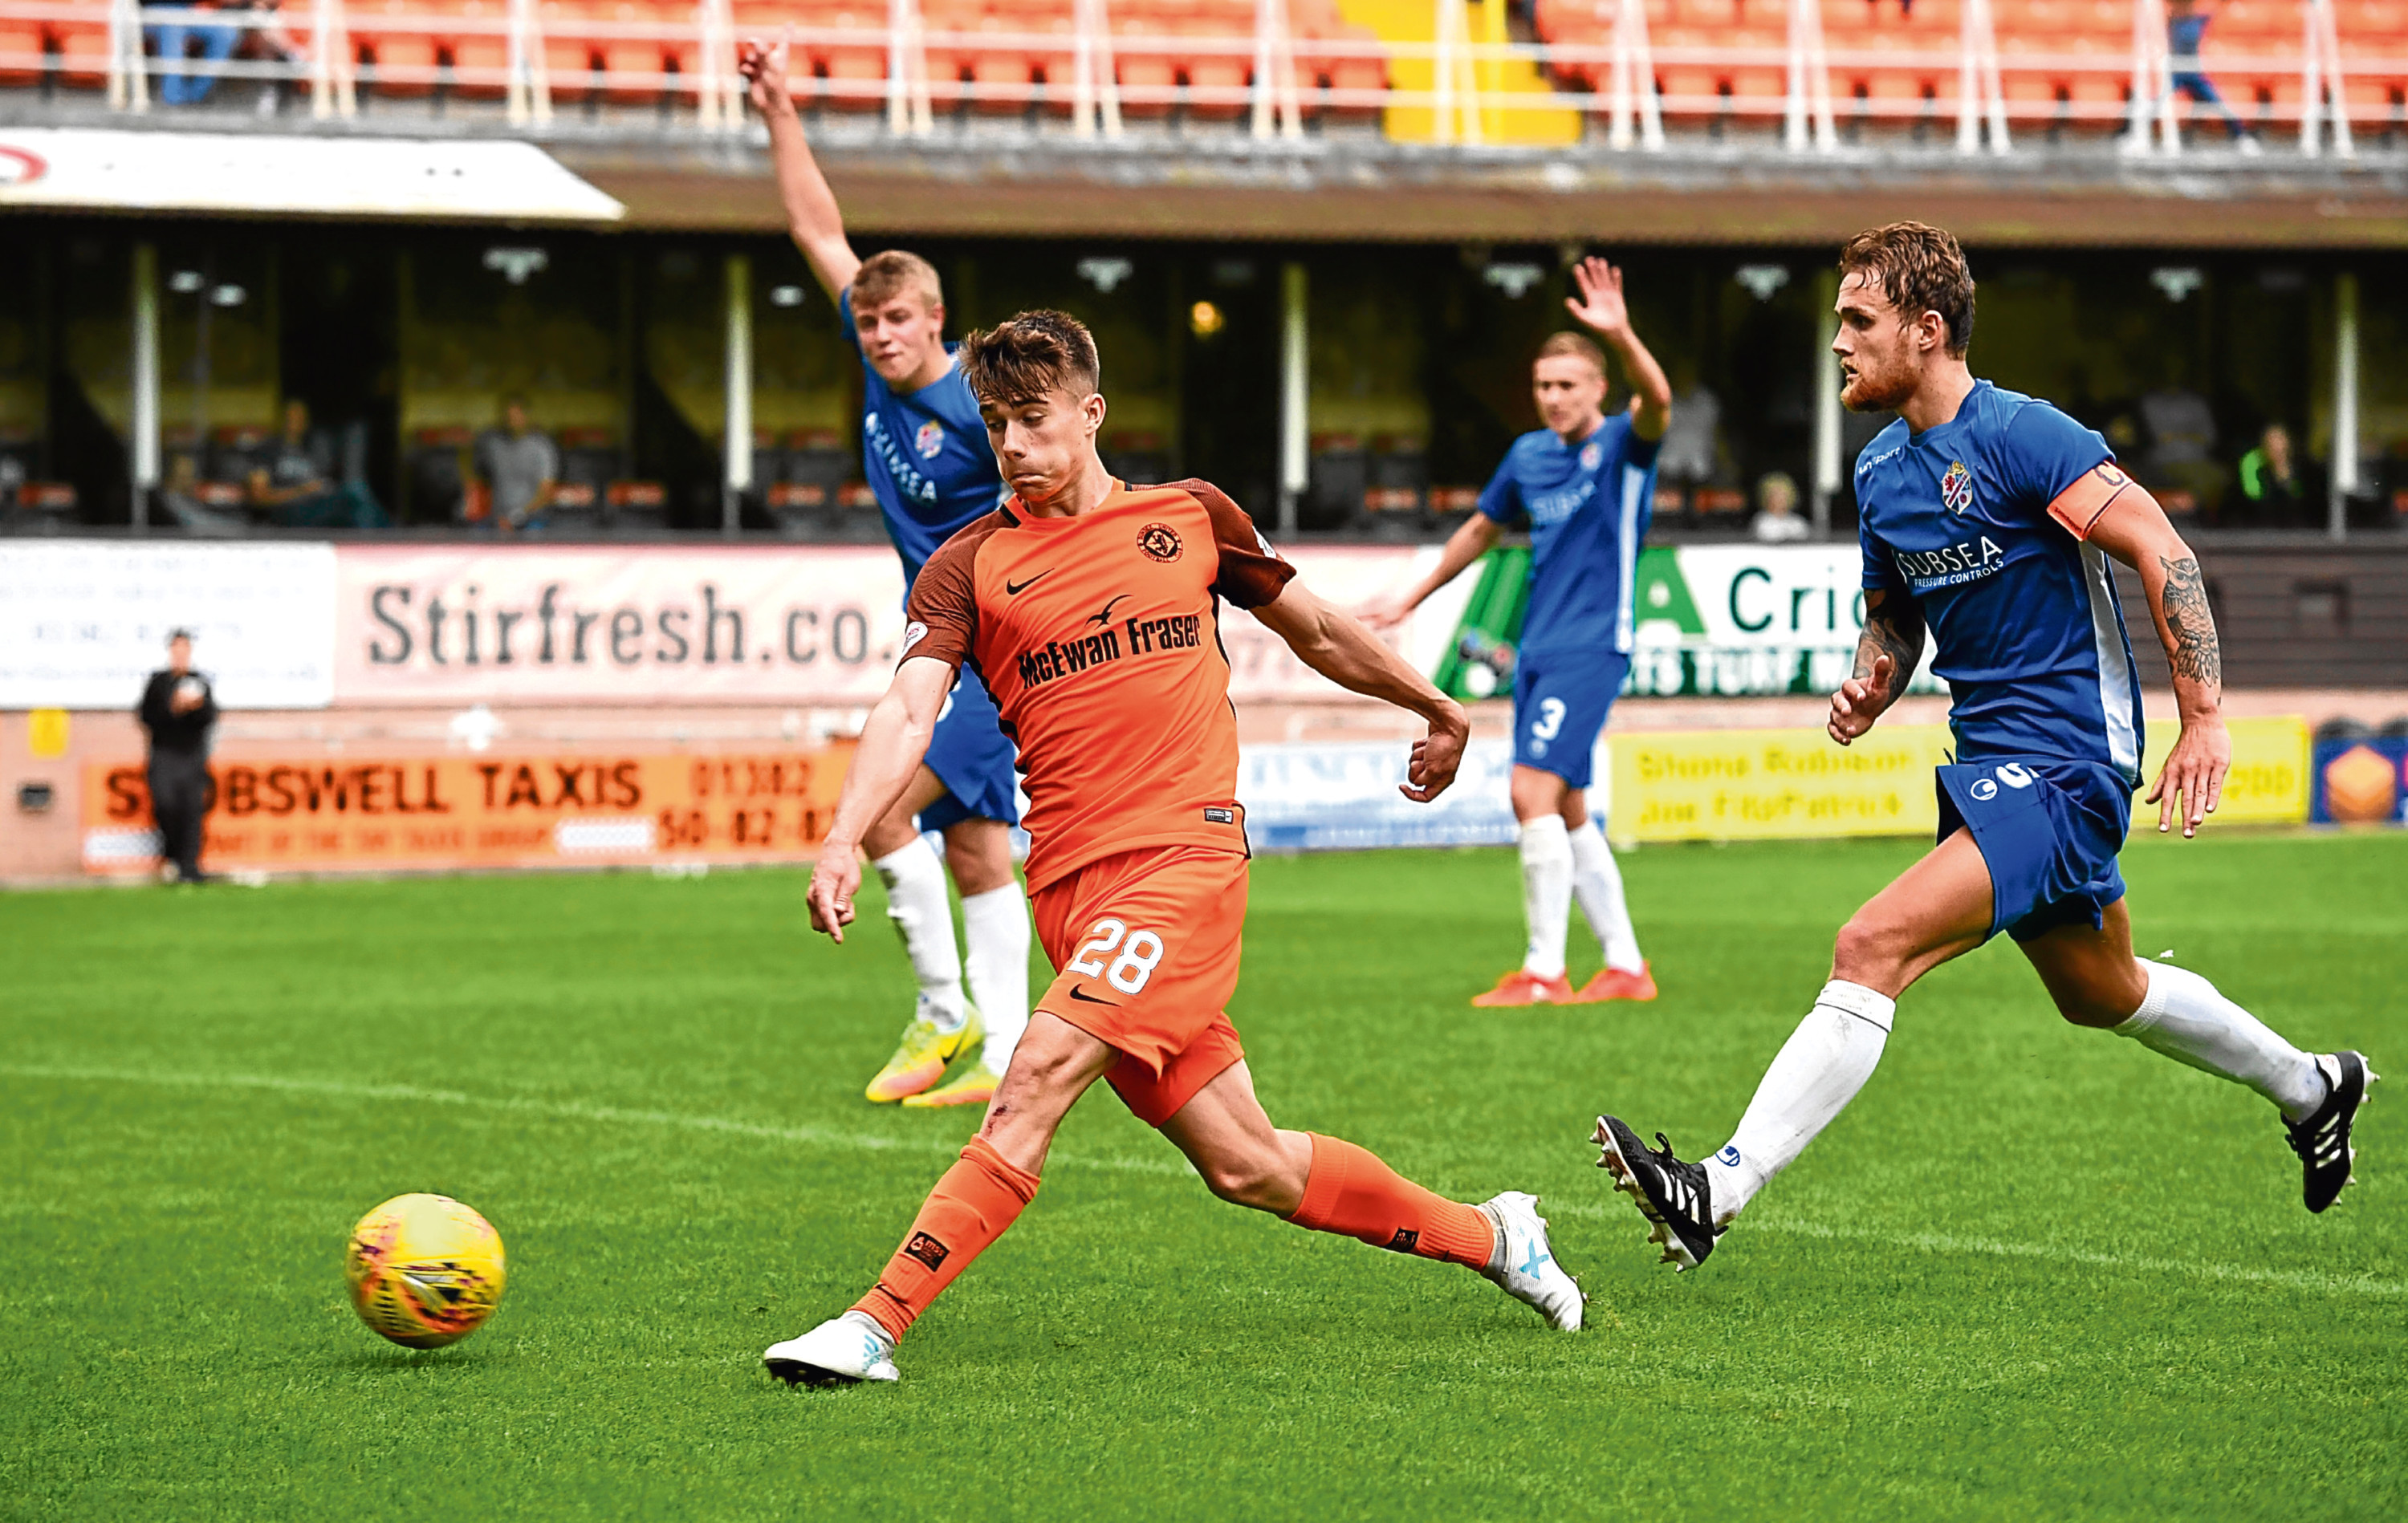 Dundee United striker Matty Smith scored against Cowdenbeath in July.